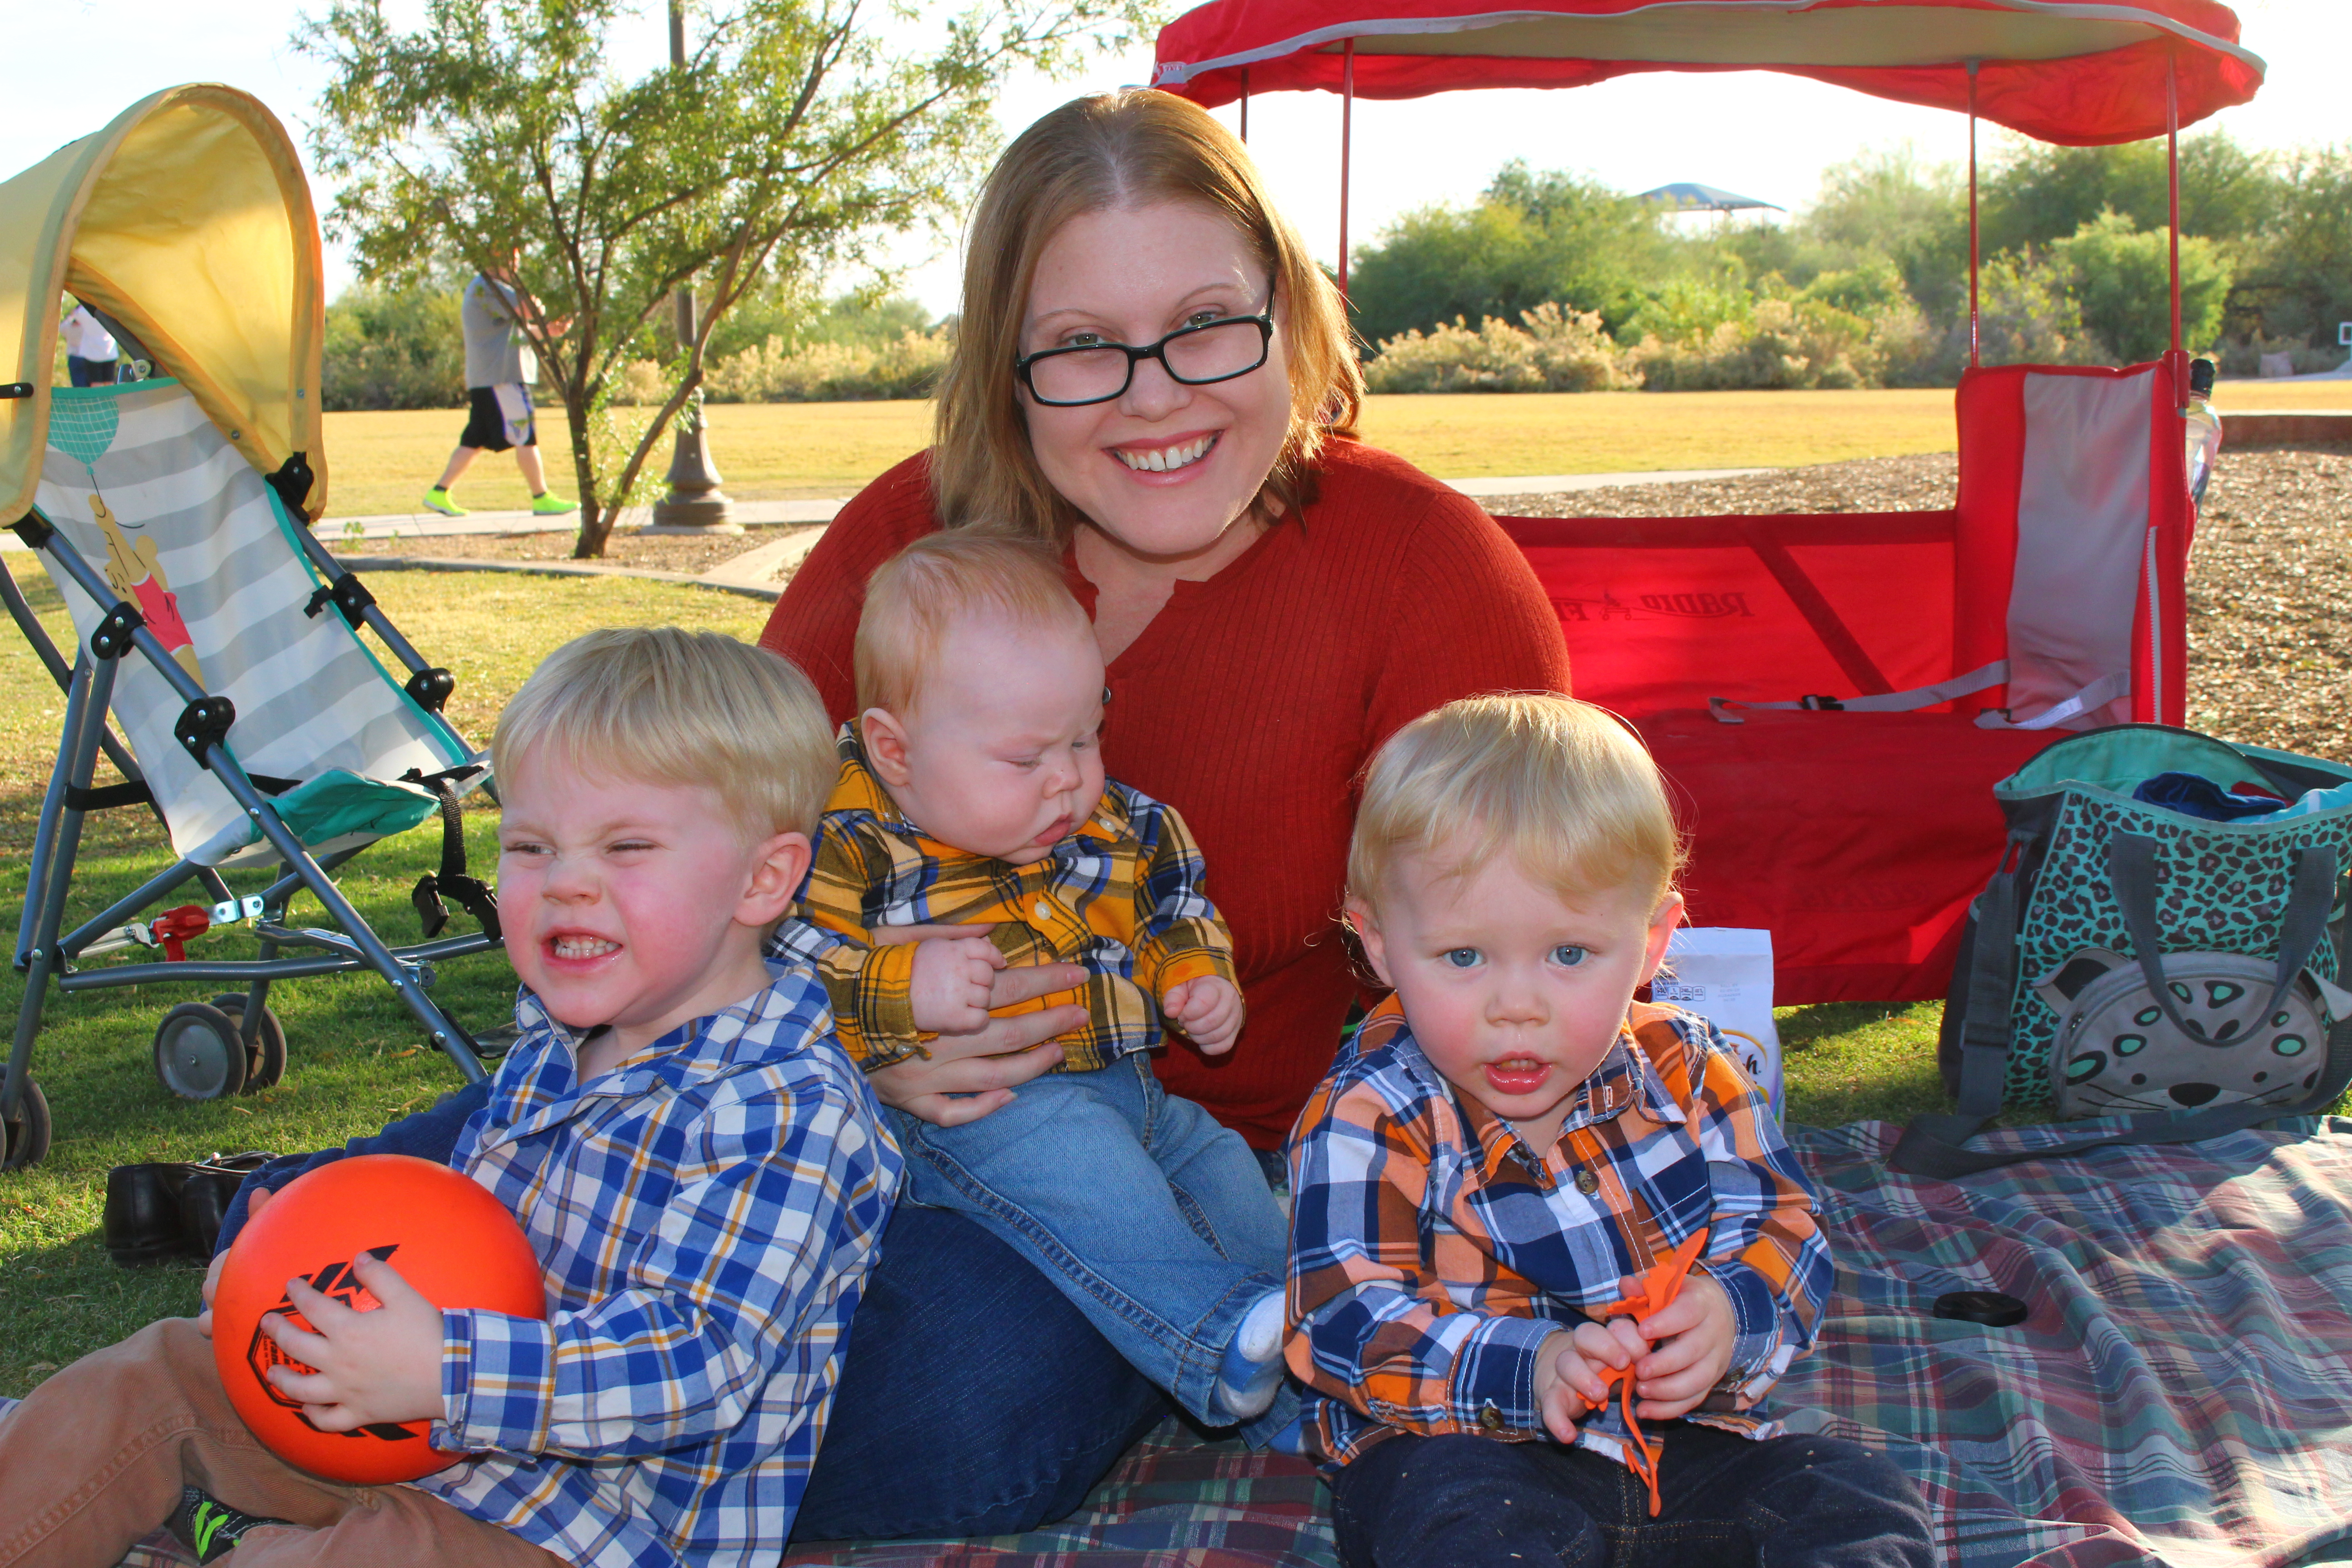 Jacquelyn, owner of A Heavenly Home, and her three boys.